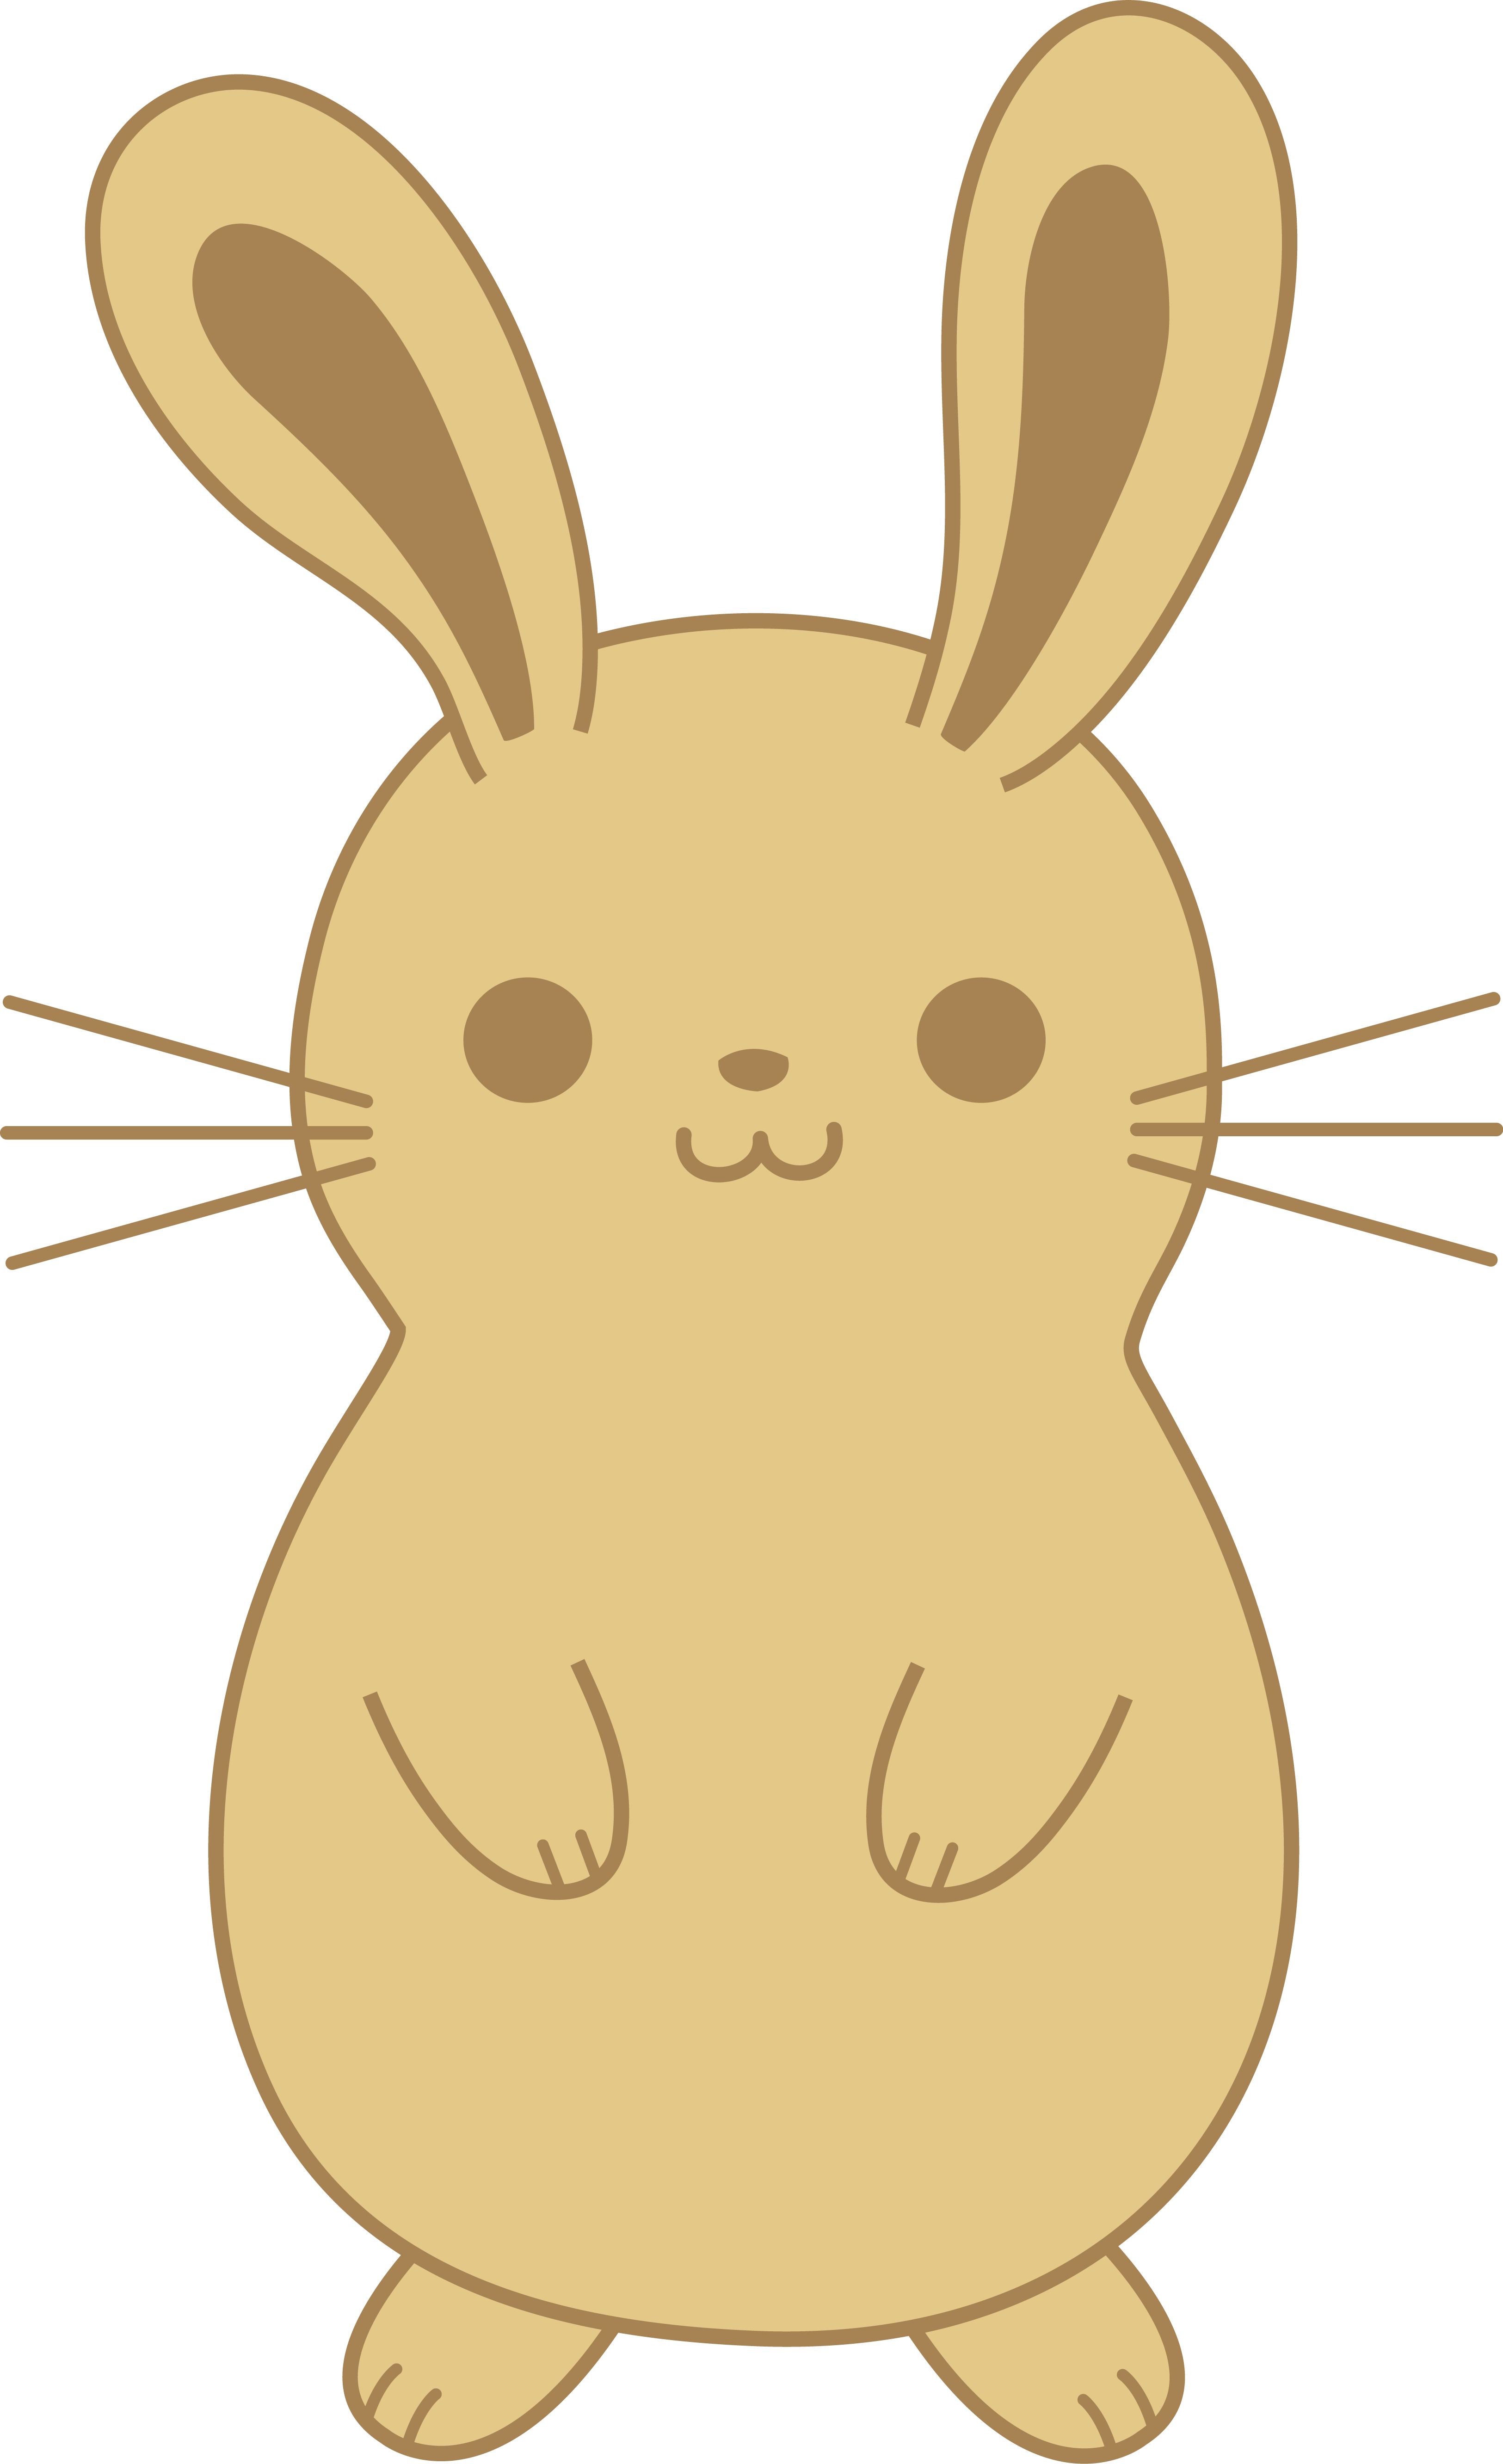 Animated rabbit clip art danasrfh top